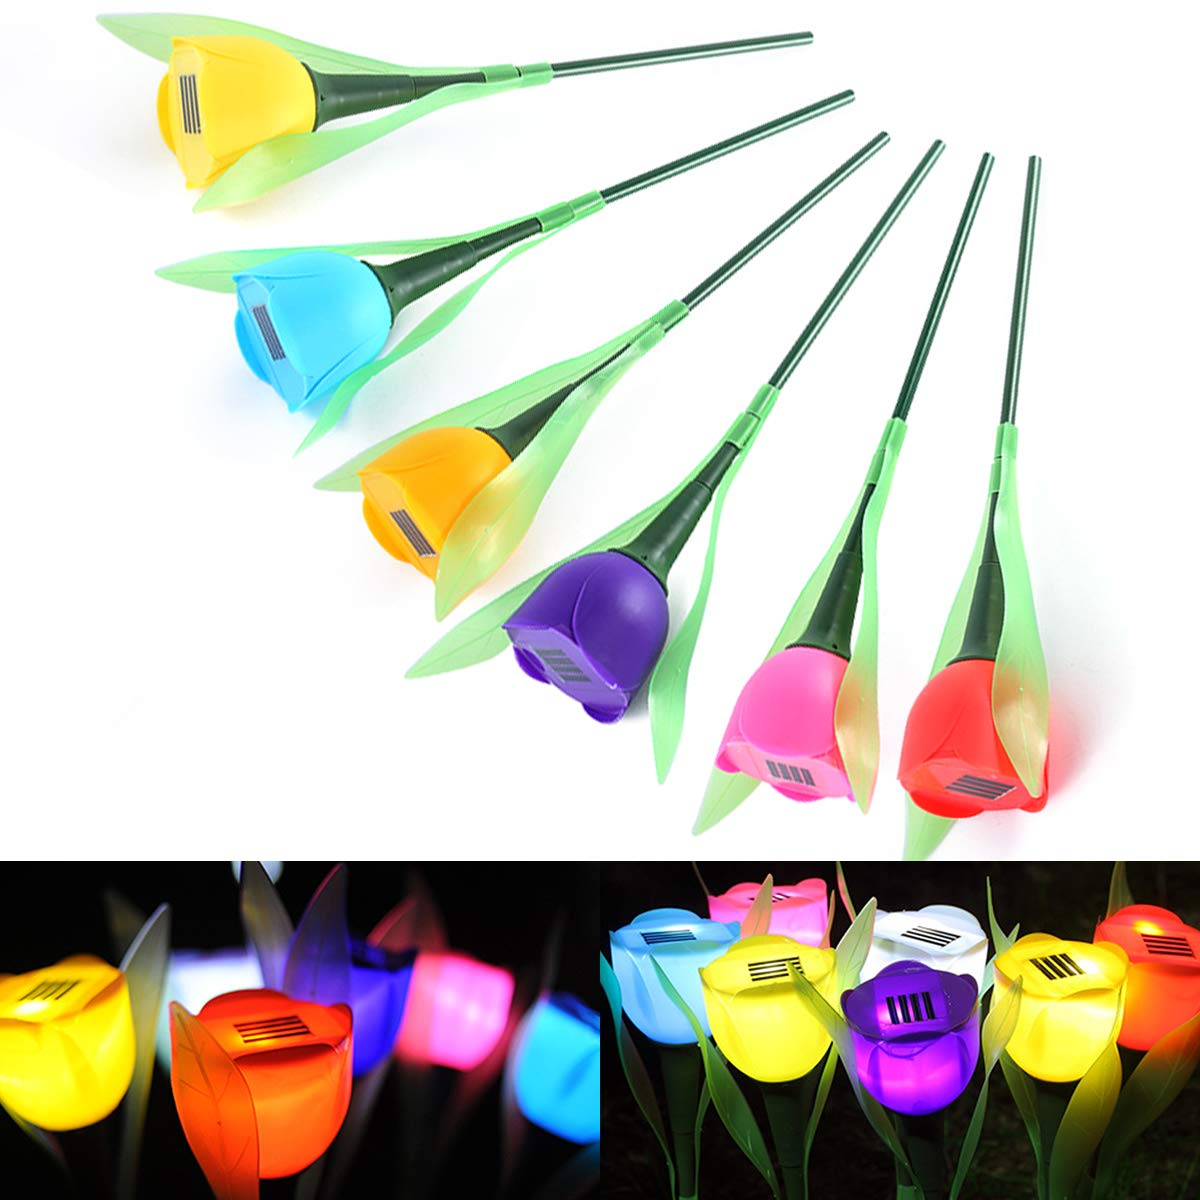 Xingny Garden Tulip Flower Shape LED Solar Powered Light Outdoor Yard Decor Stake Light